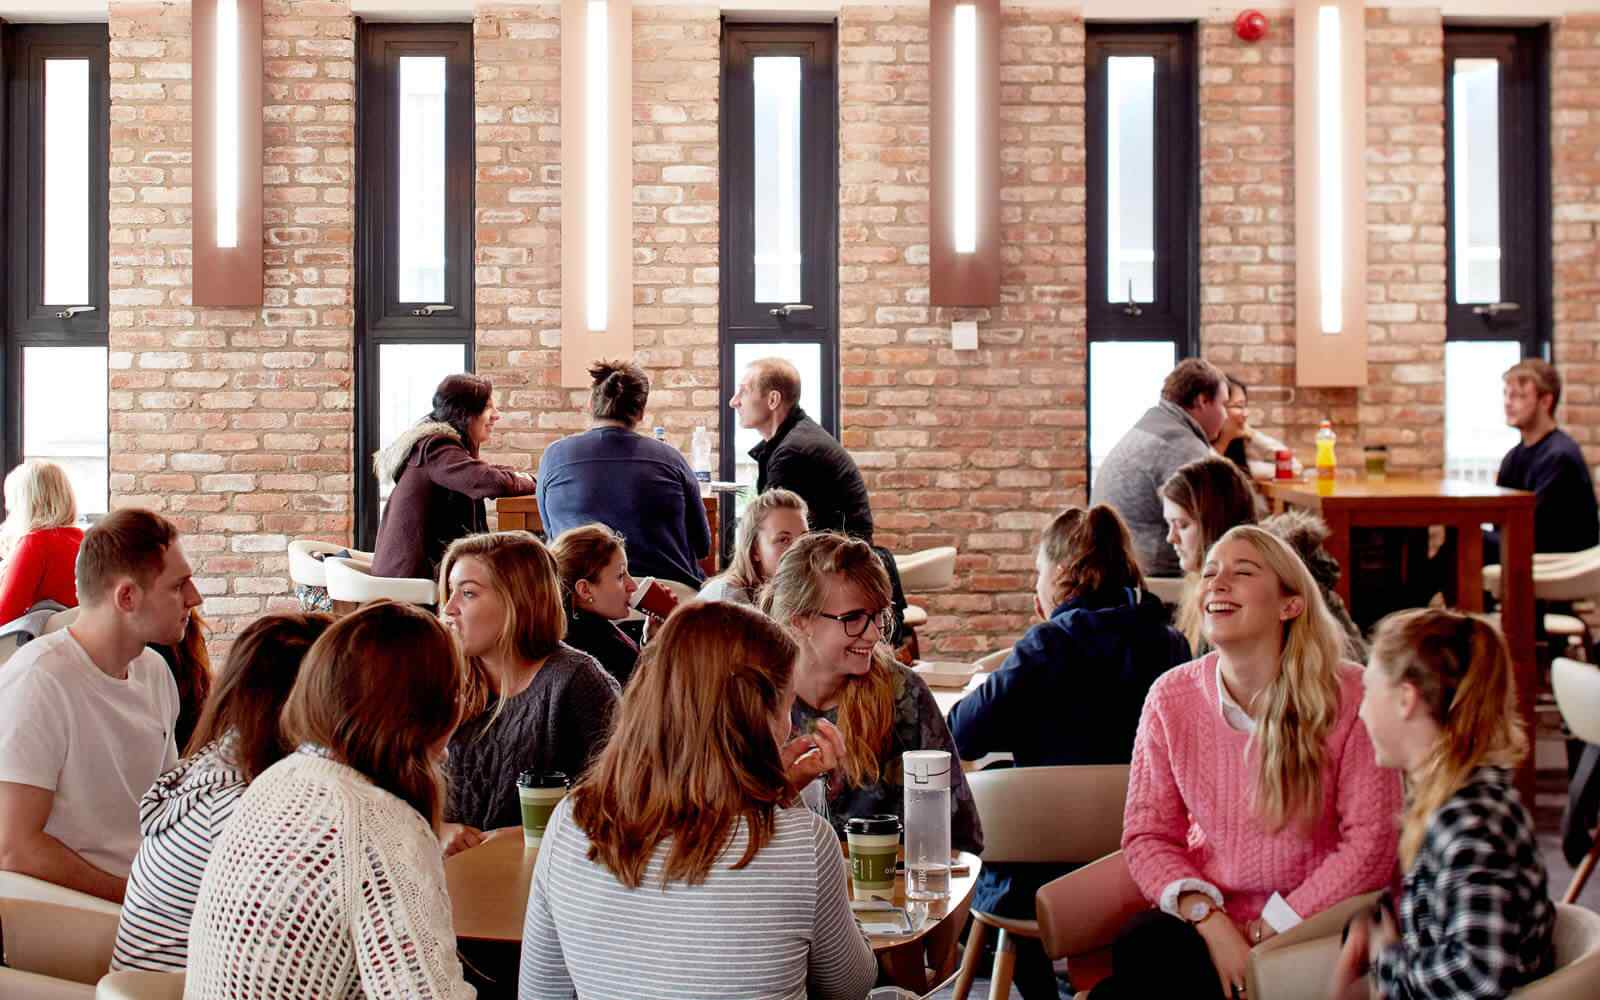 Students sat at tables in main dining hall